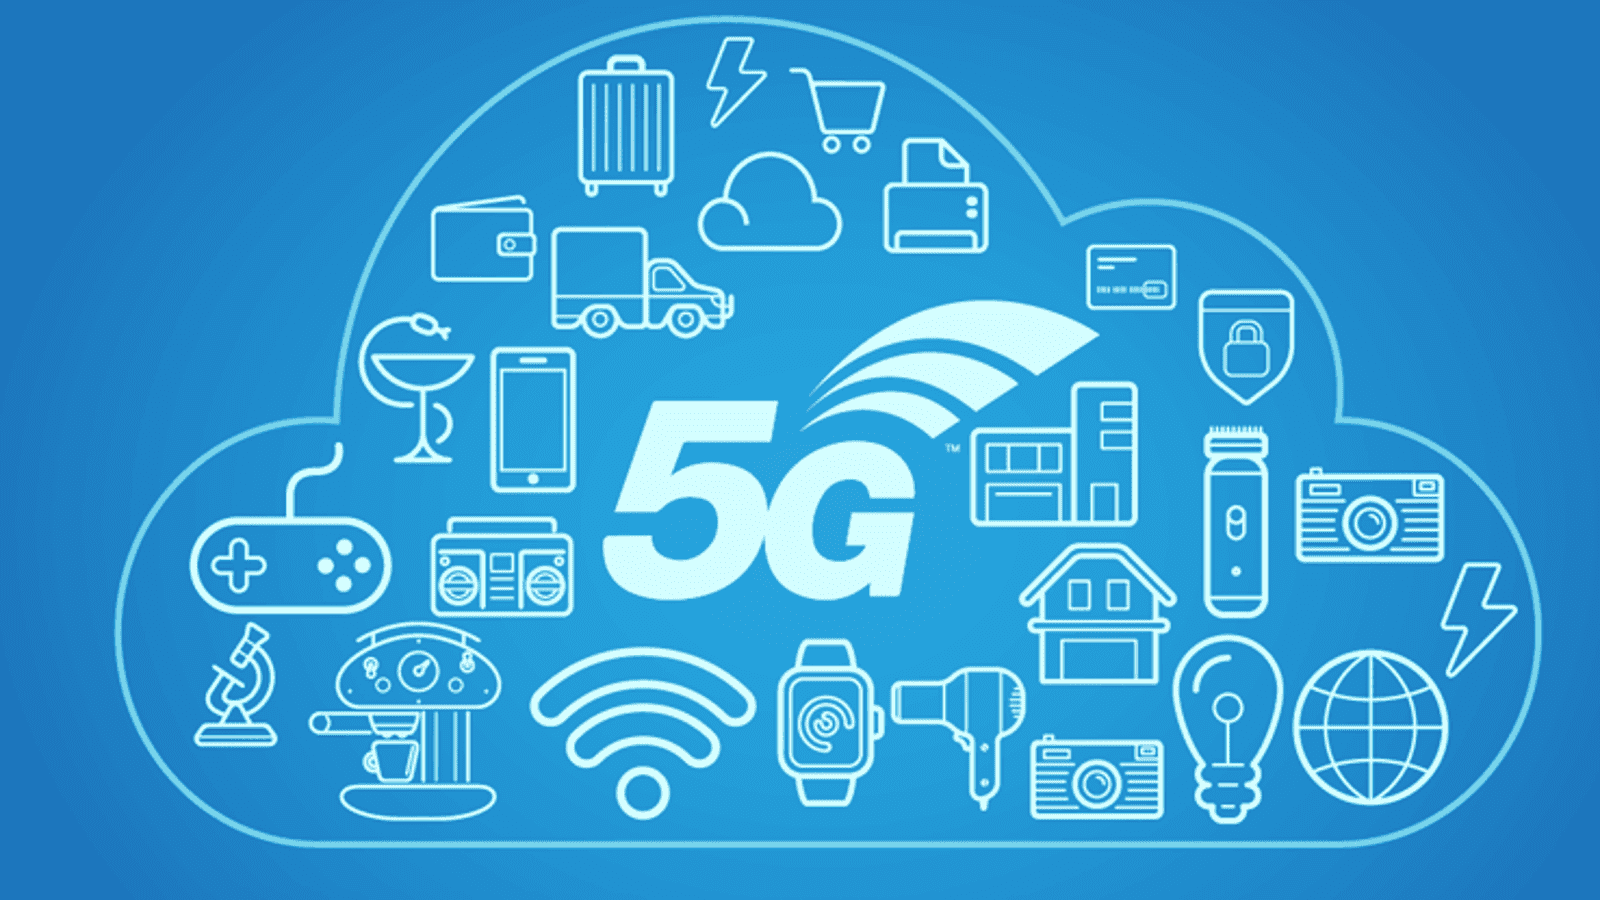 Here's What You Can Expect From 5G in 2018